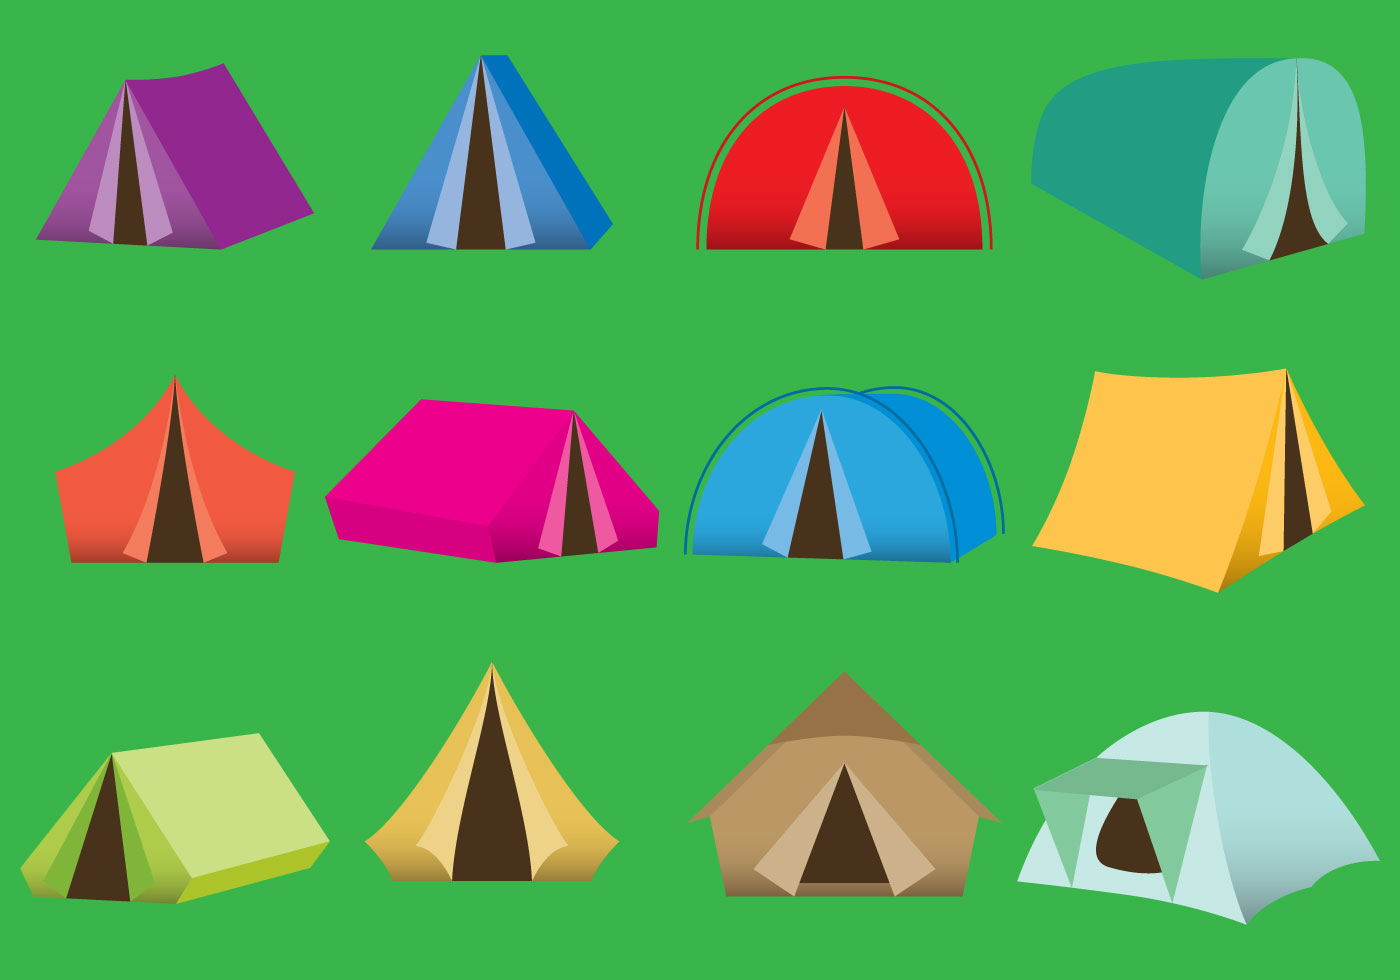 Camping Tent Free Vector Art - (715 Free Downloads)